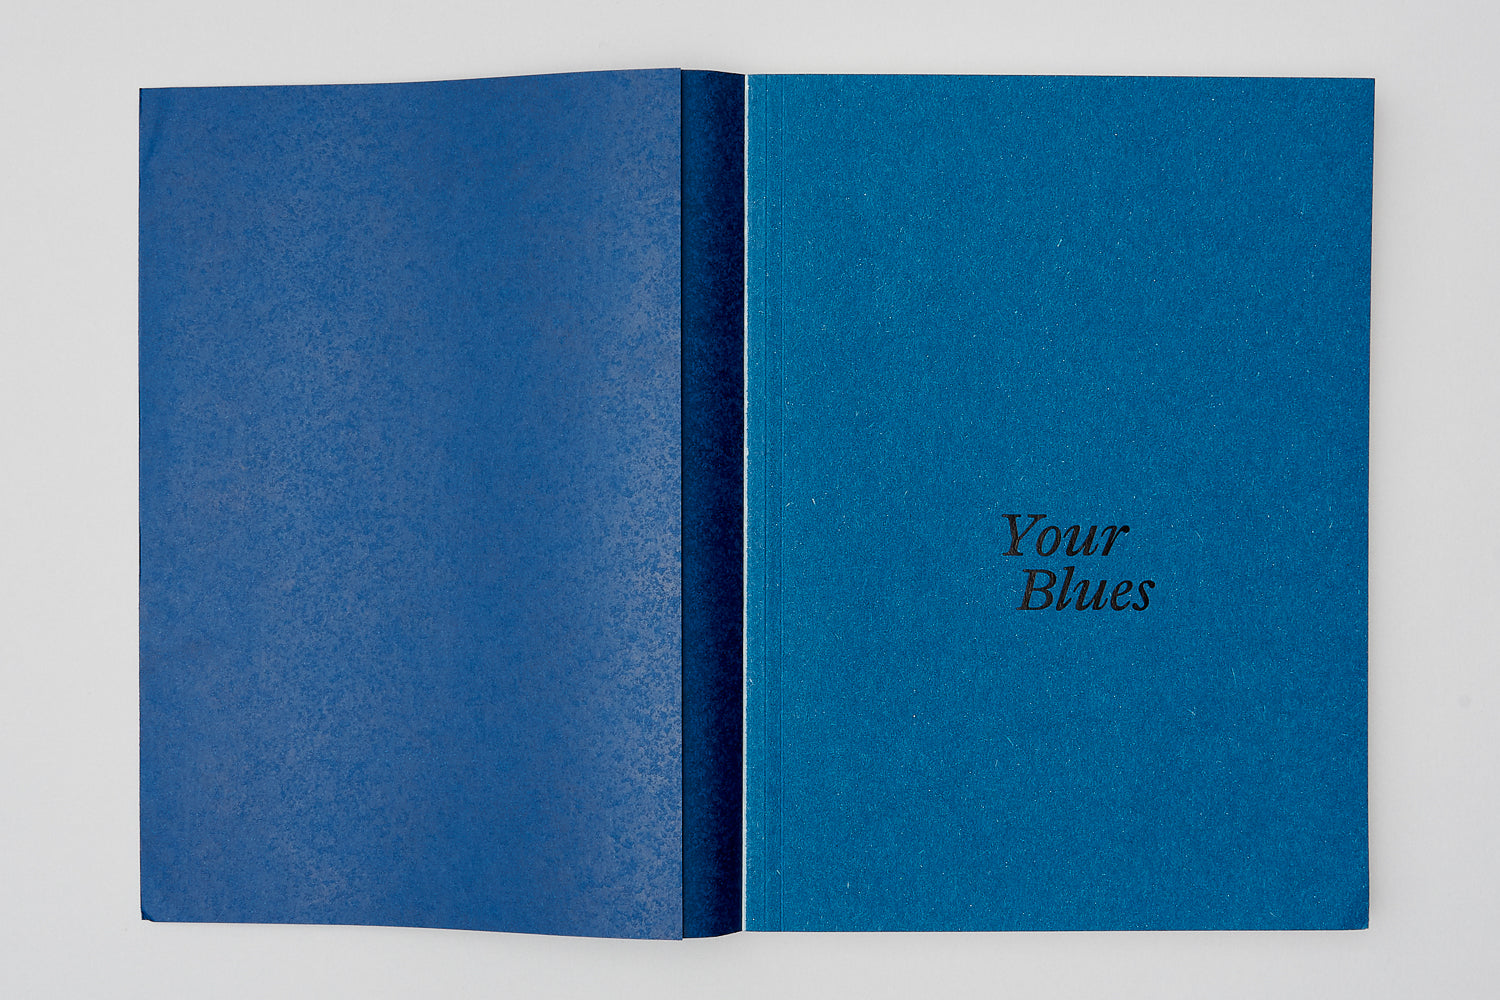 Your Blues, Michael Schmelling